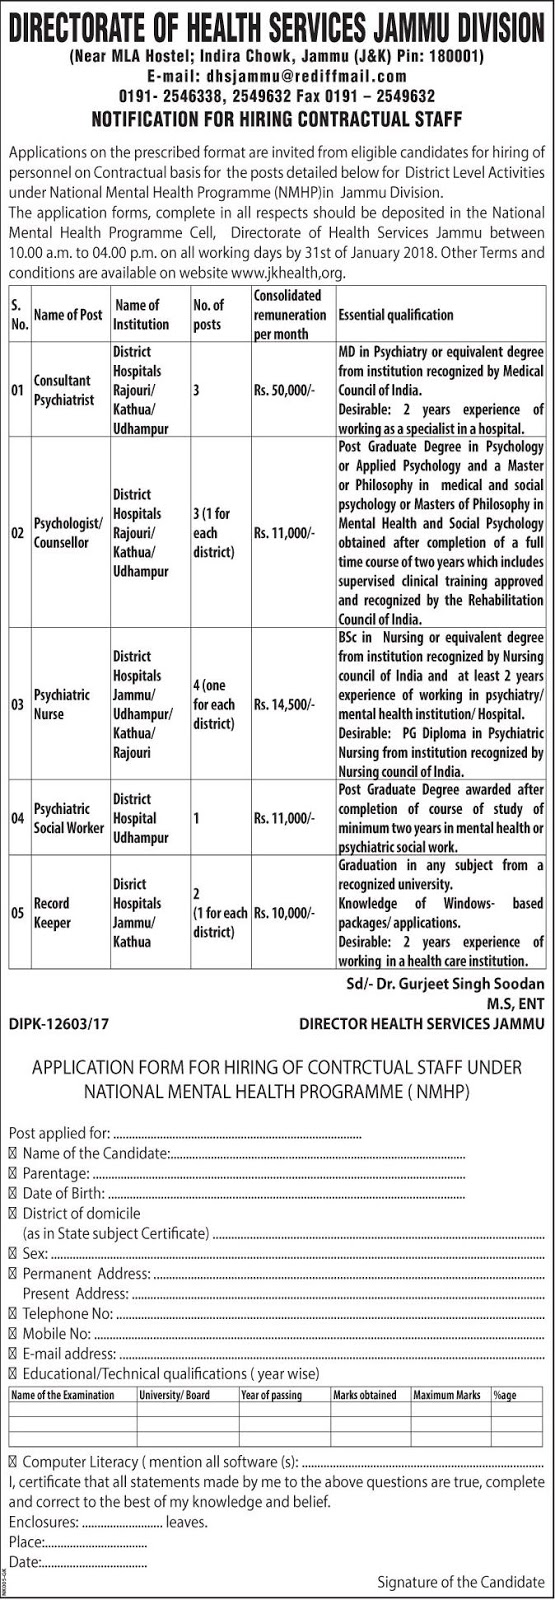 NMHP Recruitment 2018 for 13 Posts (Jammu Division)